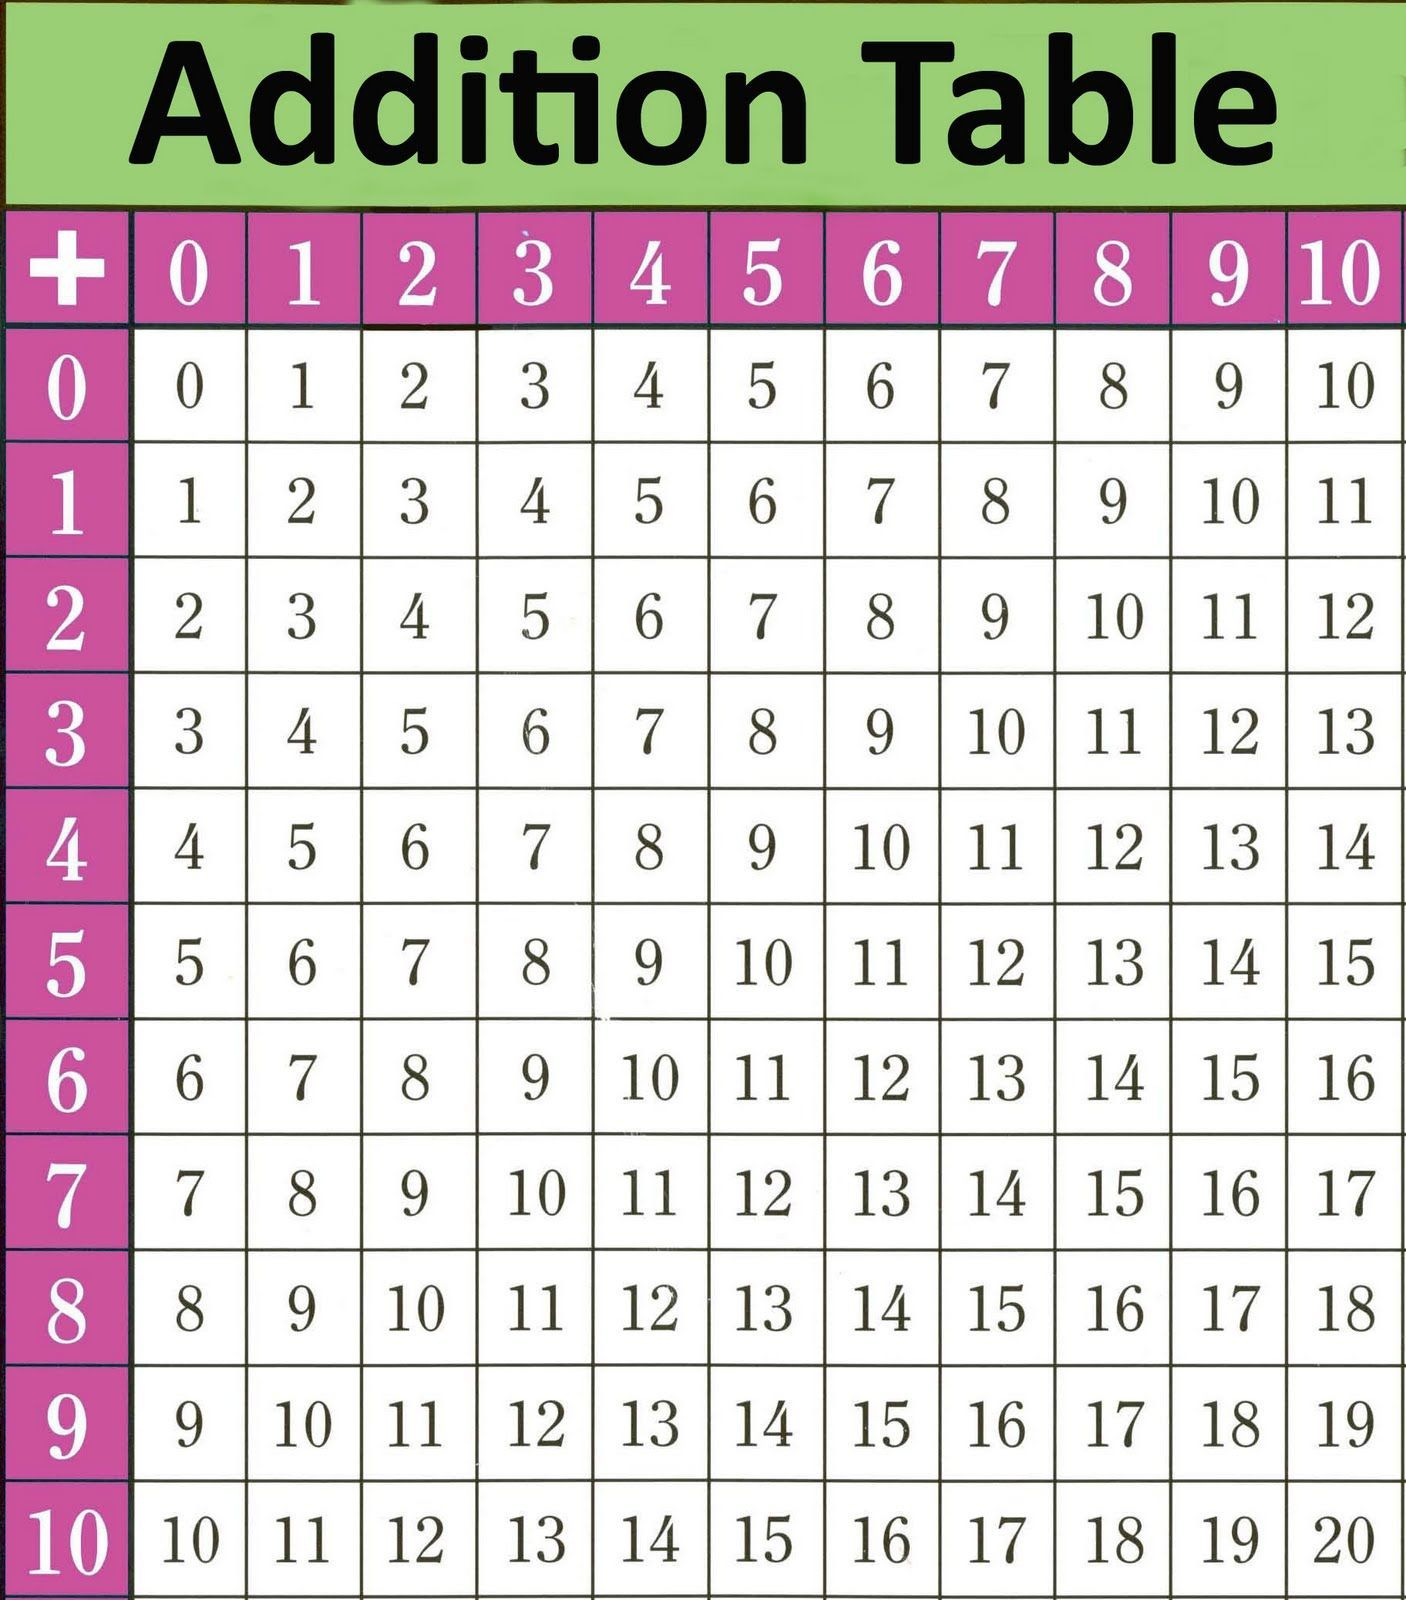 Image Result For Addition Table 1 To 12 | Addition Table | Pinterest - Free Printable Addition Chart